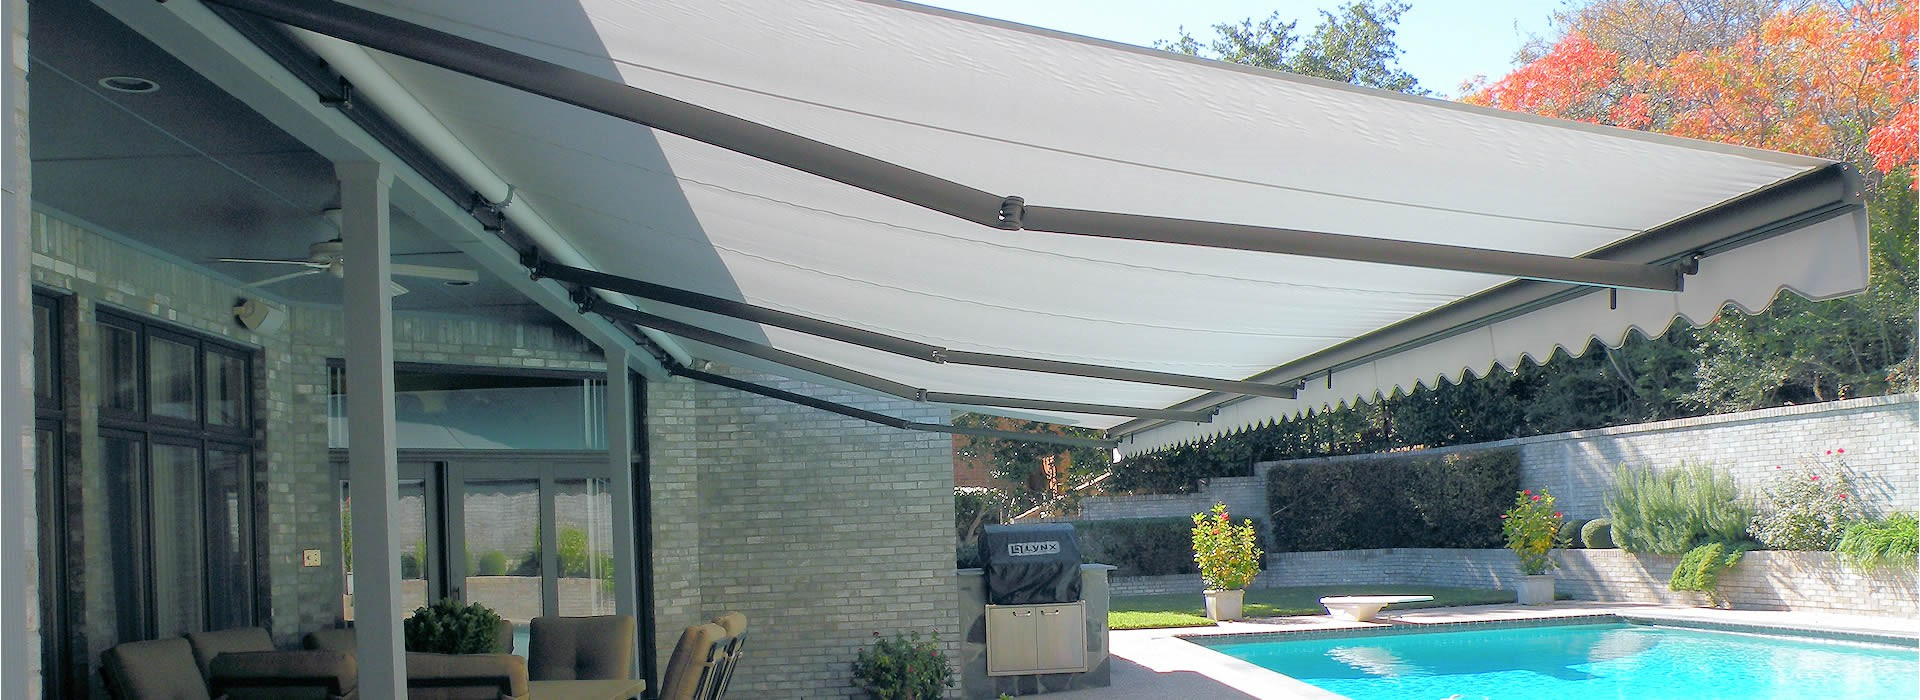 Retractable Awnings; Retractable Awnings ...